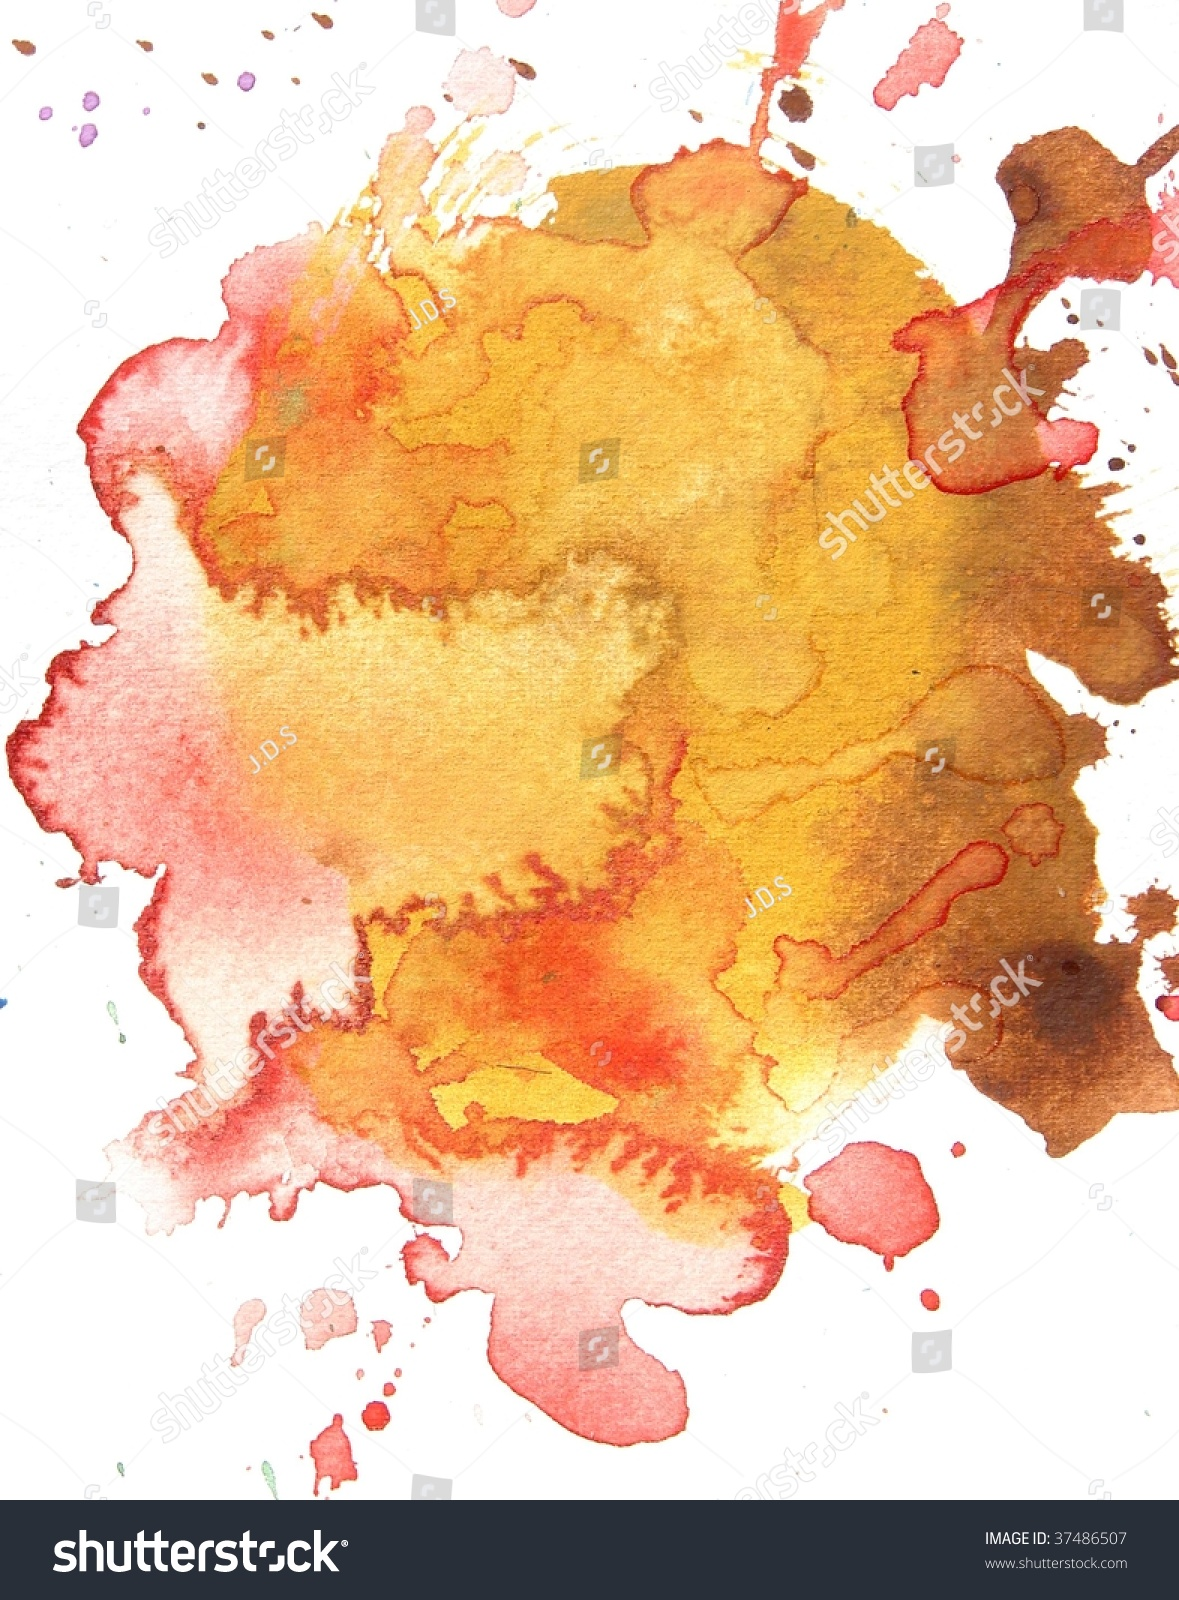 Orange Red Abstract Splash Watercolor Background Stock